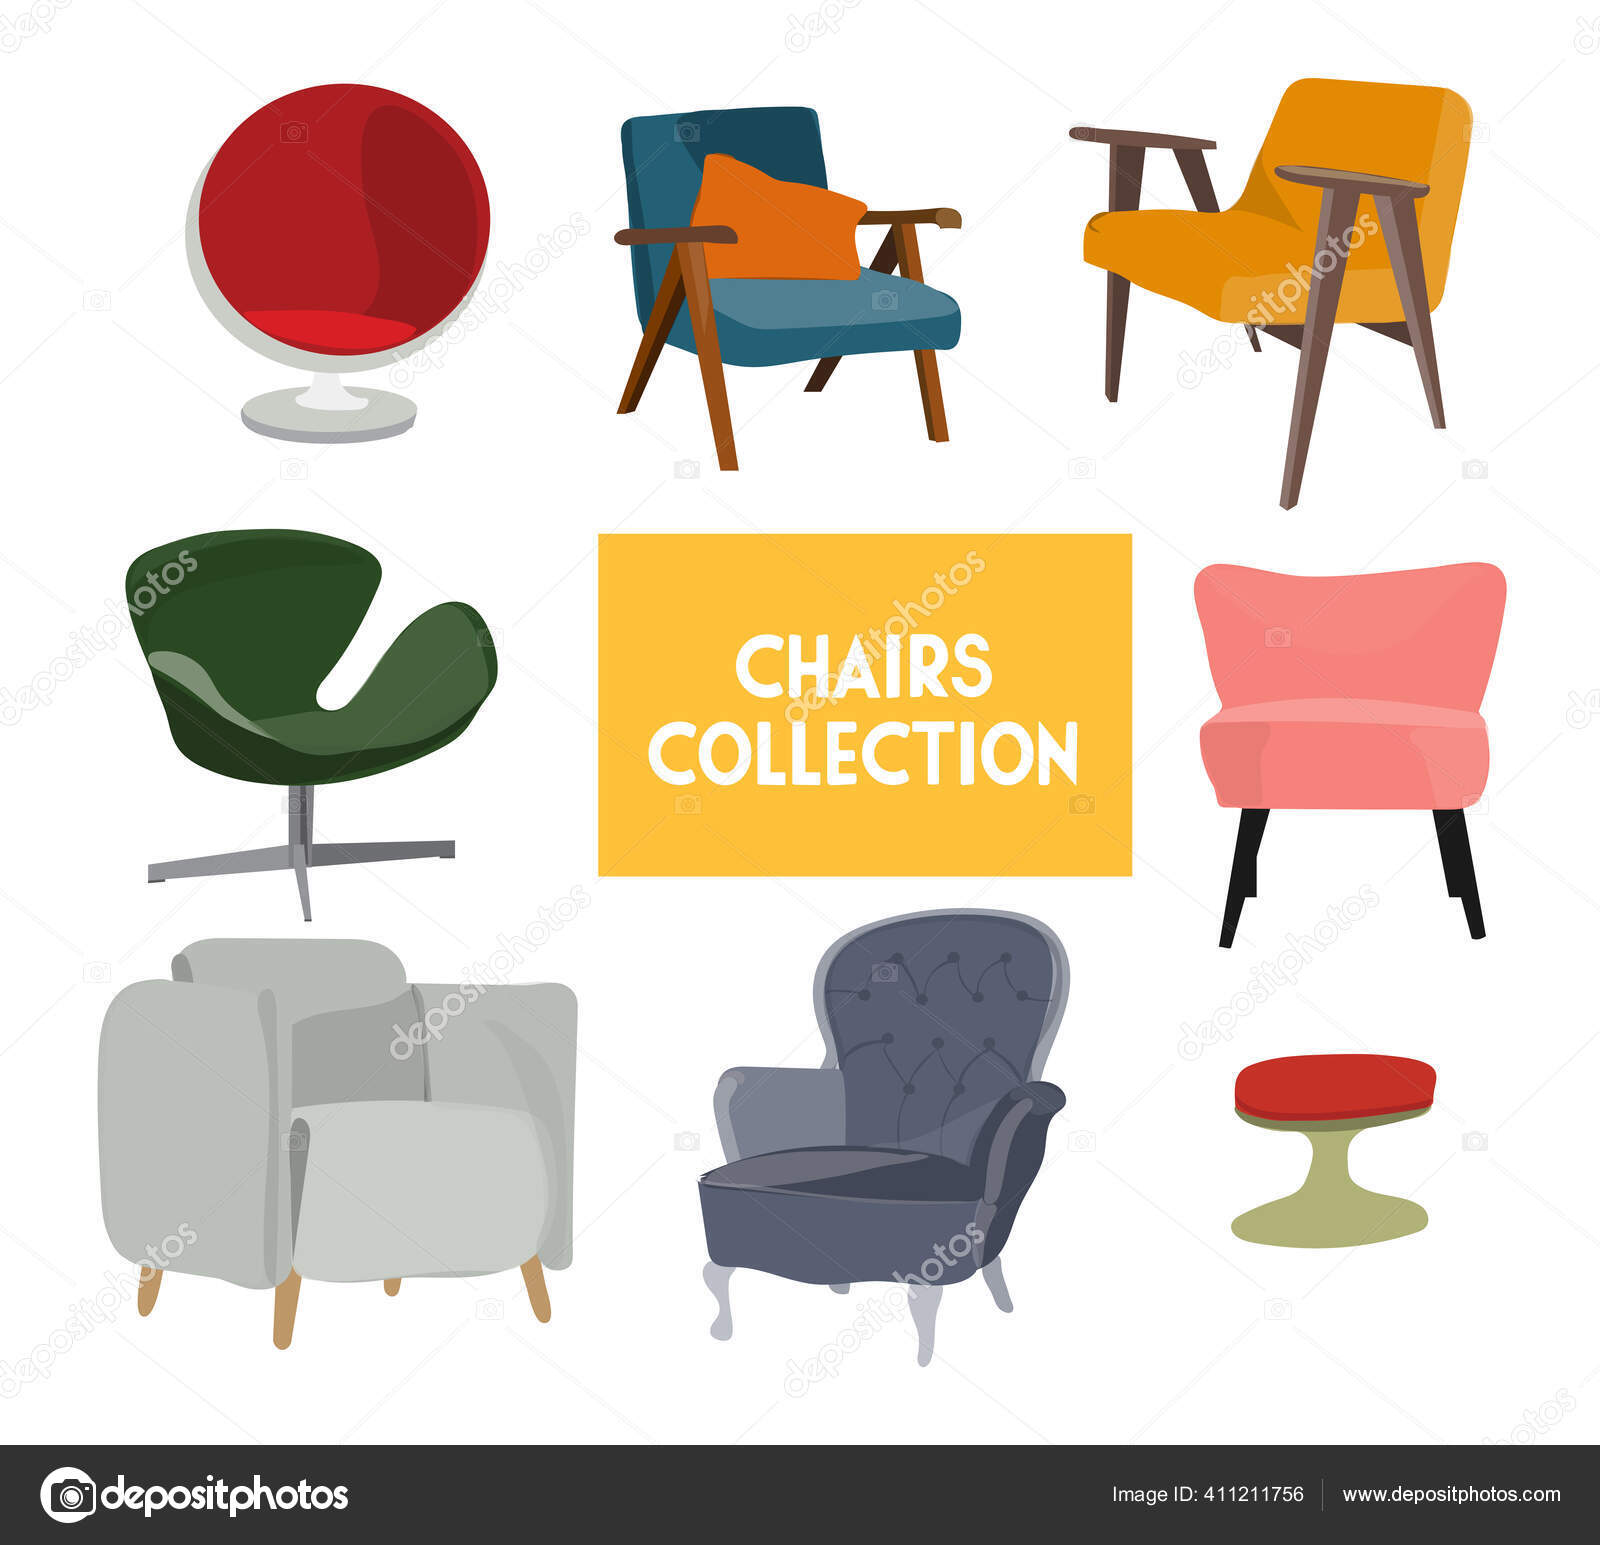 Vector Chair Collection Illustration Furniture Element Set Modern Contemporary Home Vector Image By Joanna Rosado Gmail Com Vector Stock 411211756